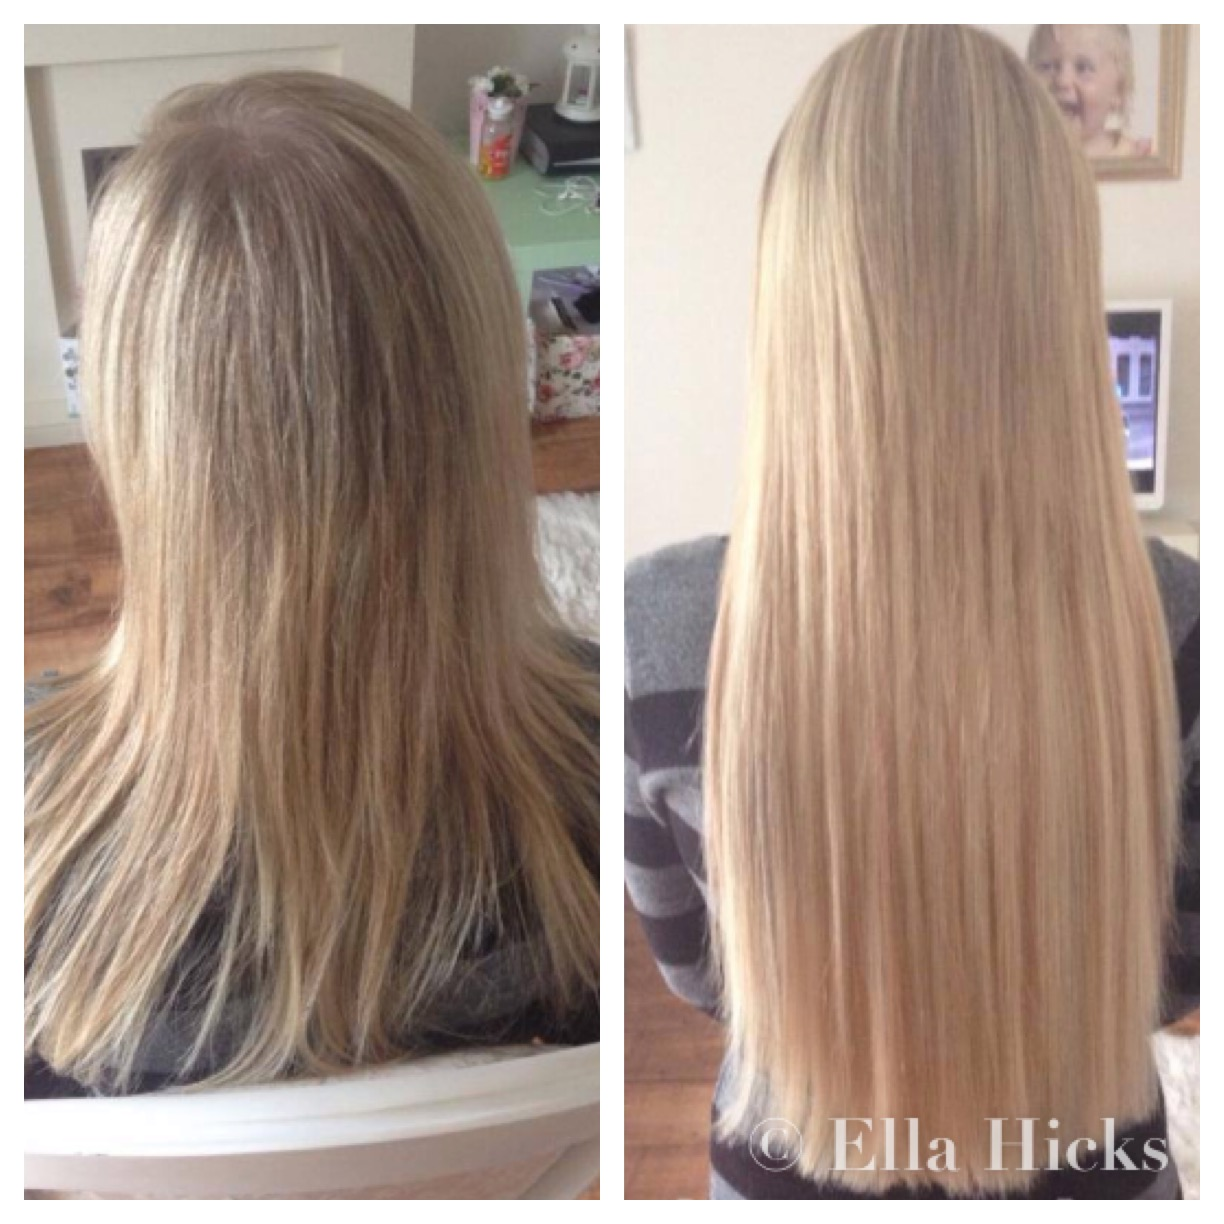 Ella hicks hair extensions portfolio long blonde micro ring hair extensions pmusecretfo Images